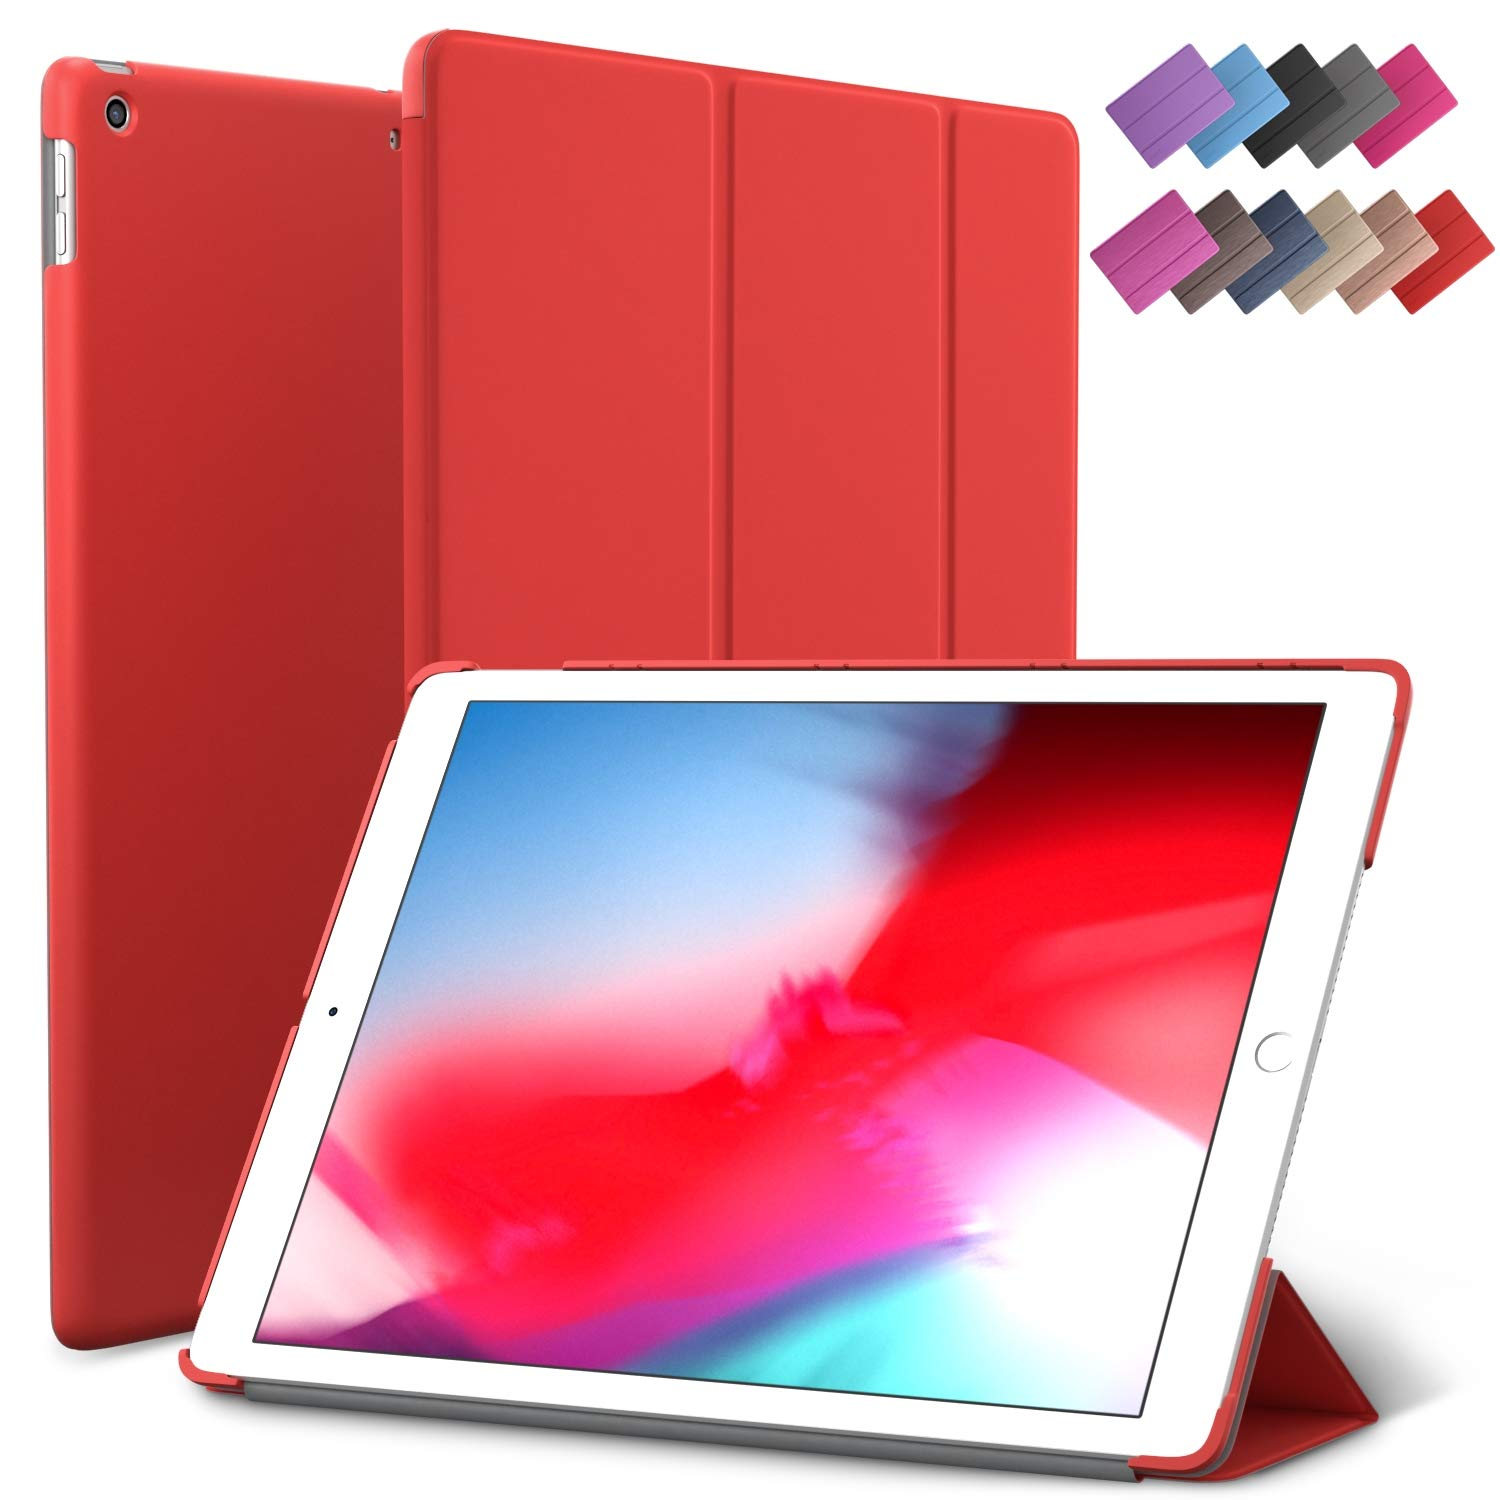 iPad Mini 5 case, ROARTZ Red Slim Fit Smart Rubber Coated Folio Case Hard Cover Light-Weight Wake/Sleep for Apple iPad Mini 5th Generation 2019 Model ...